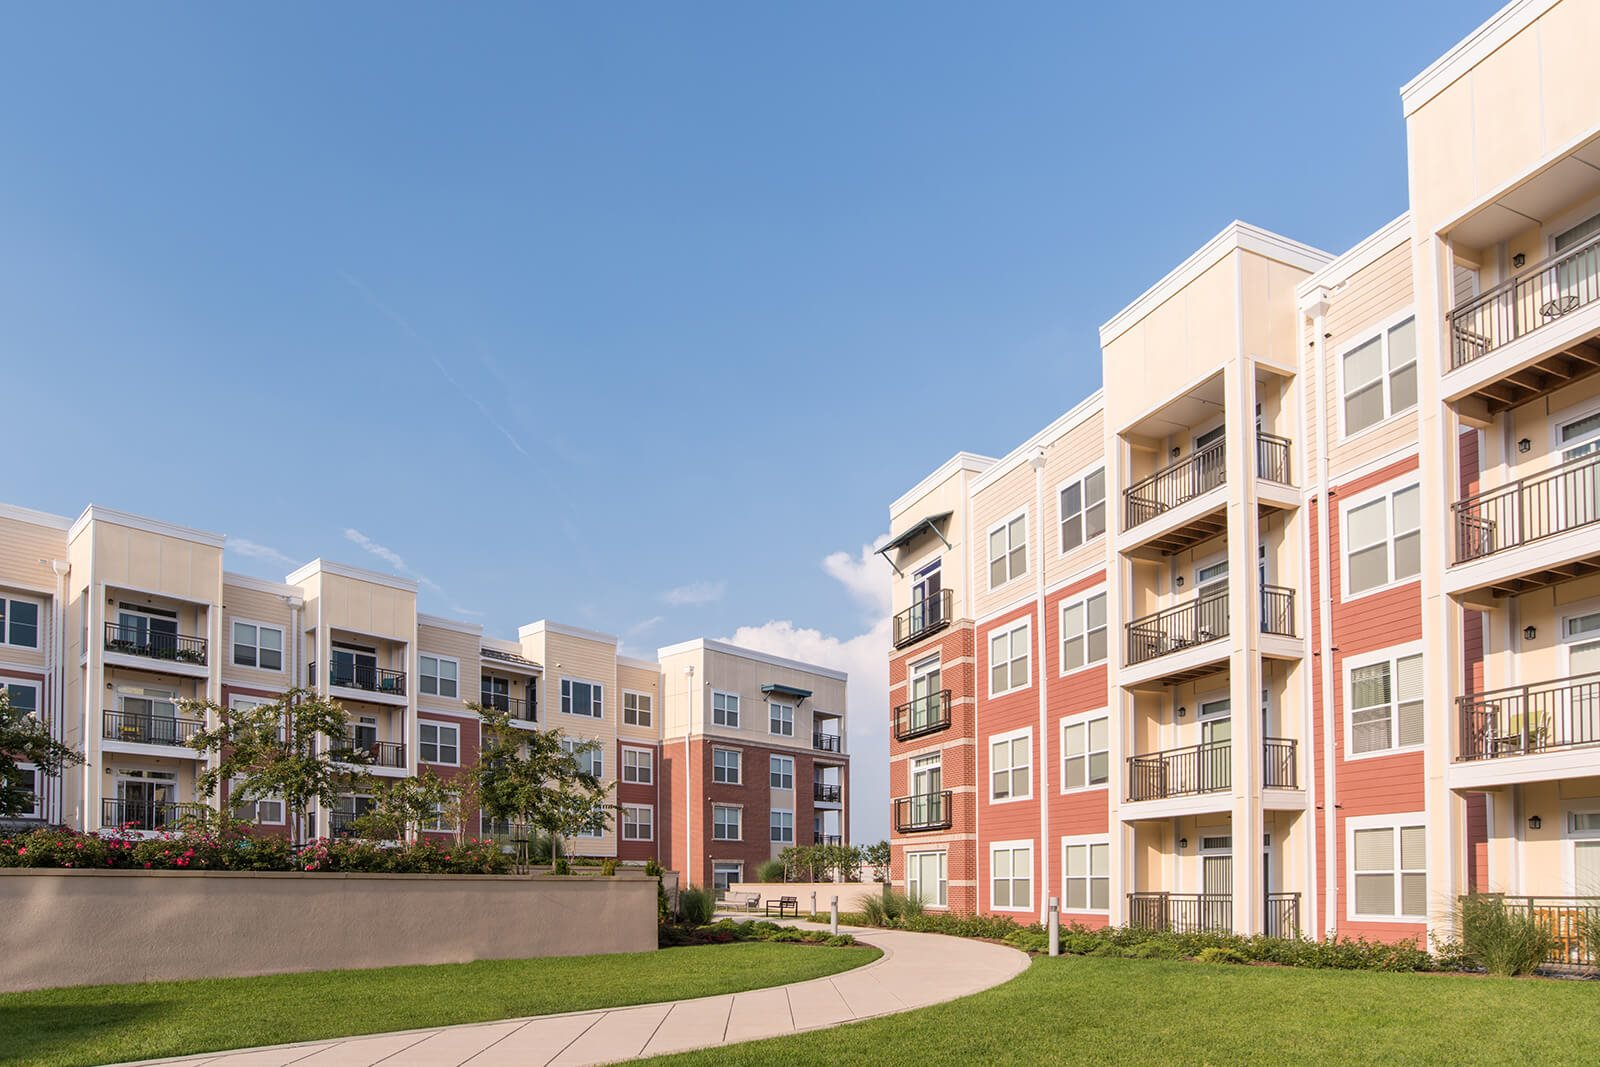 Professionally Managed Apartment Community at The Ridgewood by Windsor, Virginia, 22030